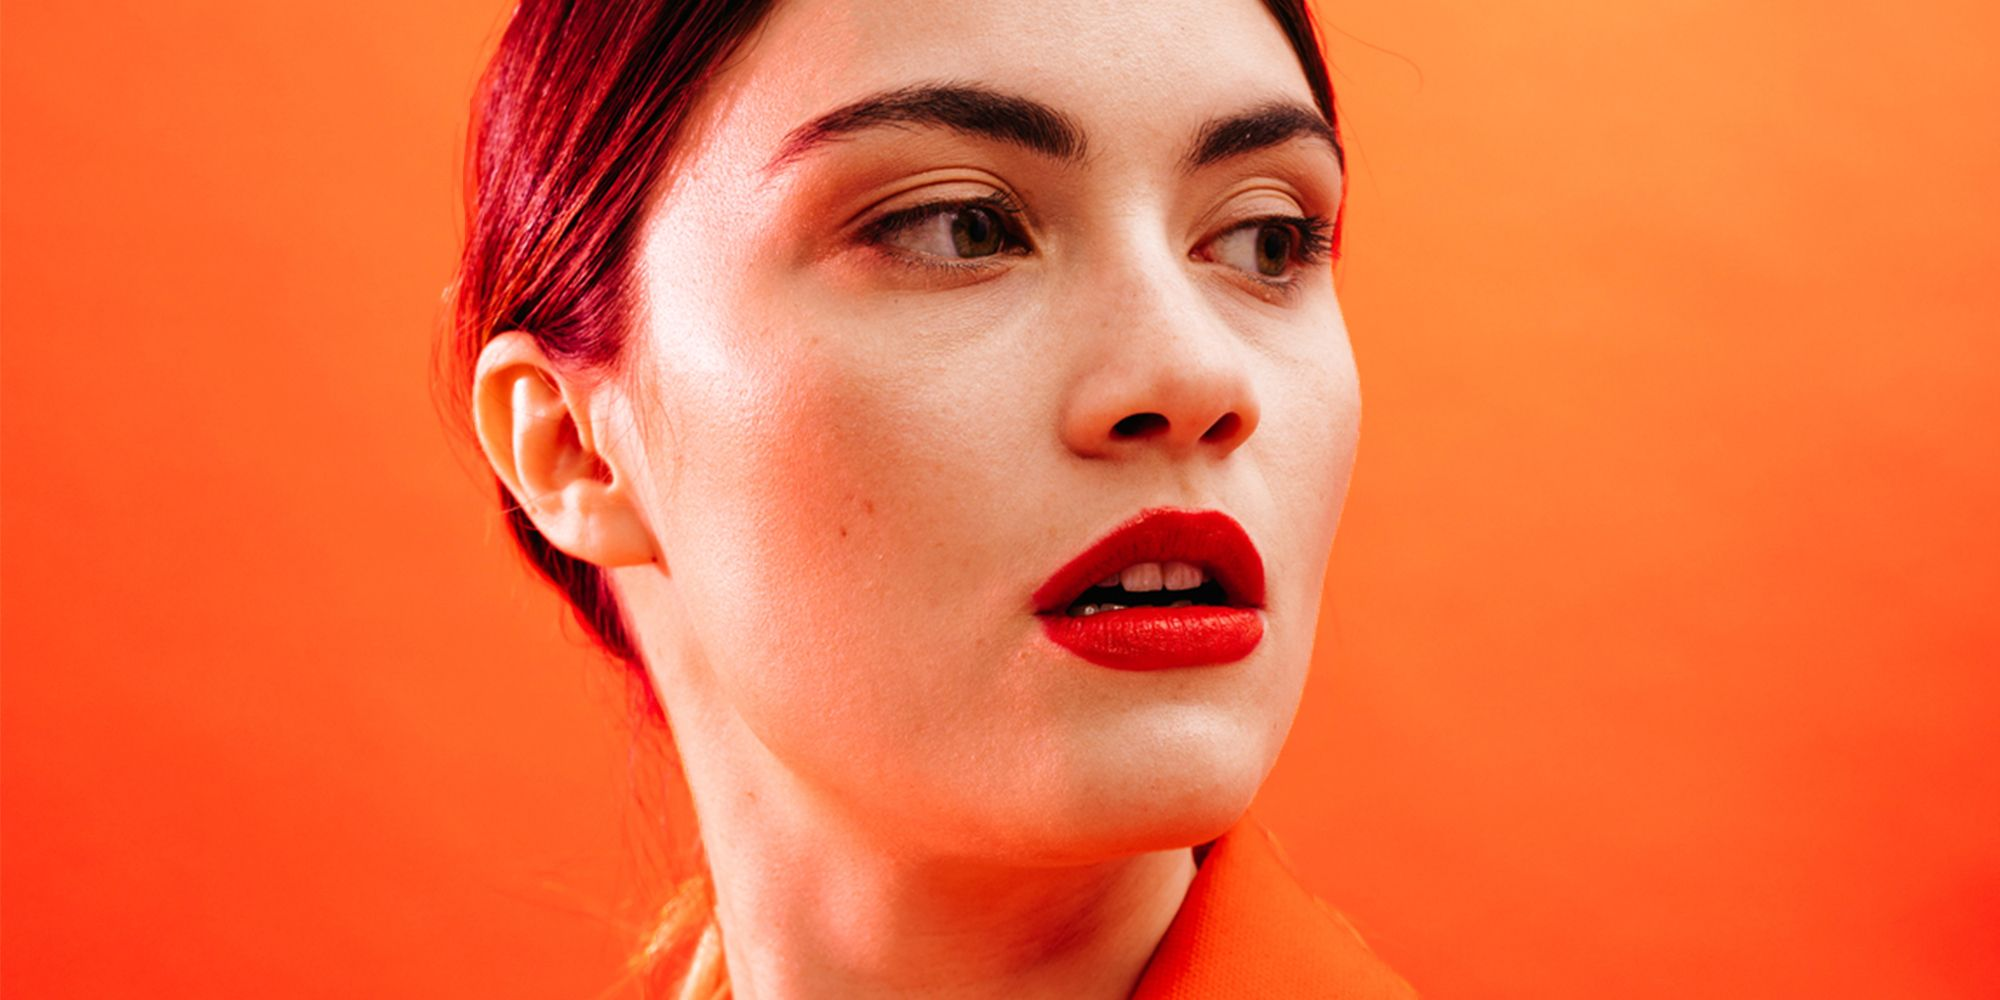 foto de The Weird Reason Your Foundation Looks Orange - Oxidized Foundation